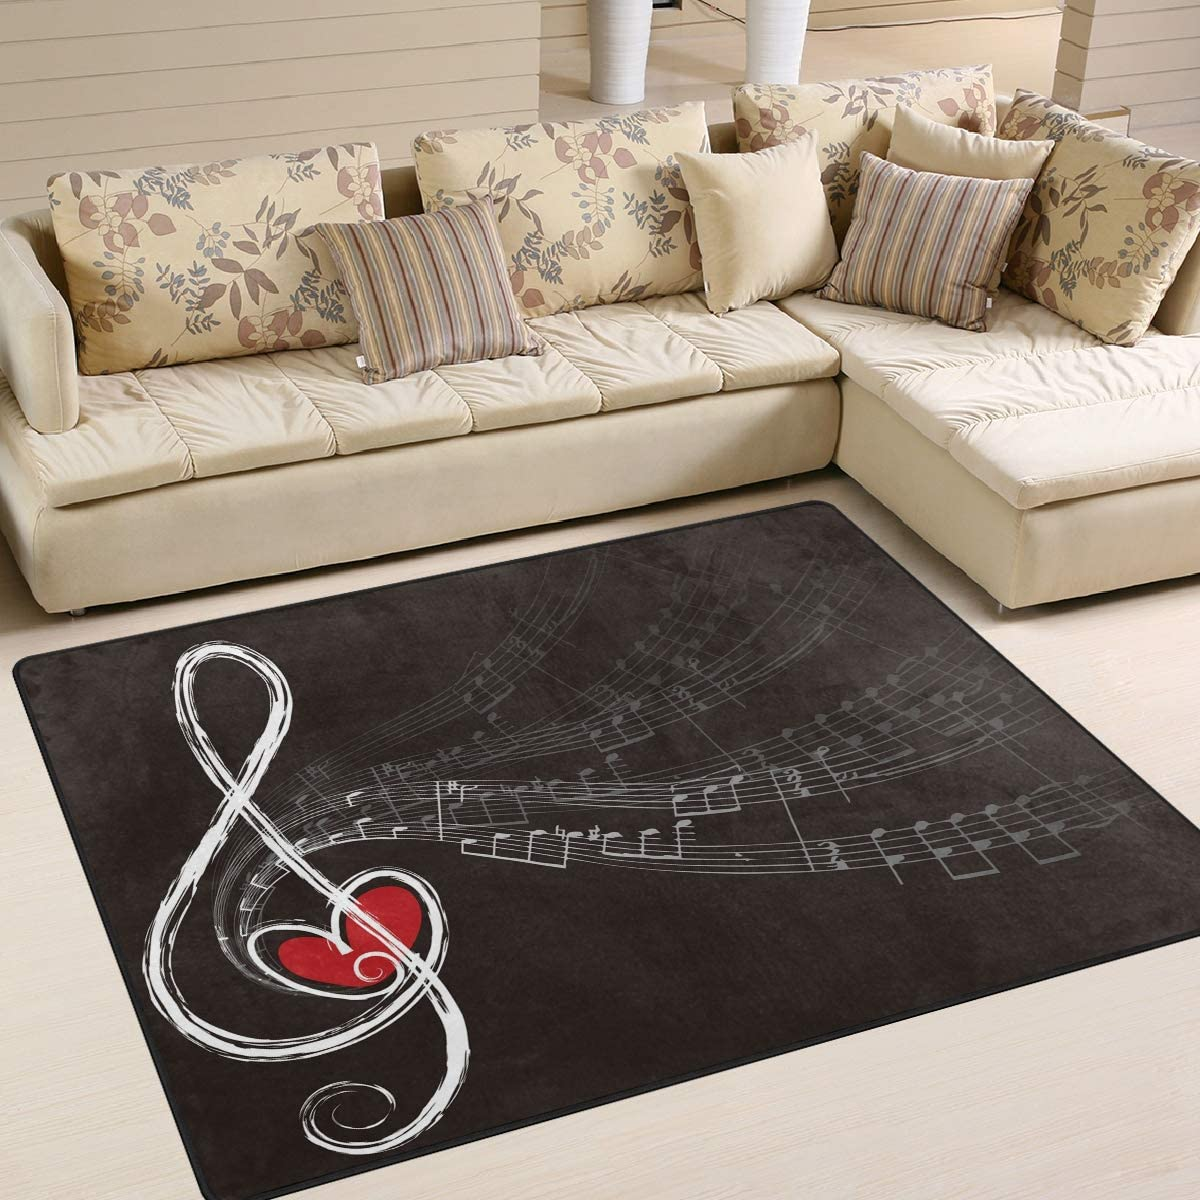 ALAZA Hipster Music Note with Love Indoor Modern Area Rug 4 x 5 , Dining Room Home Bedroom Carpet Floor Mat Nursery Rug Room Mat